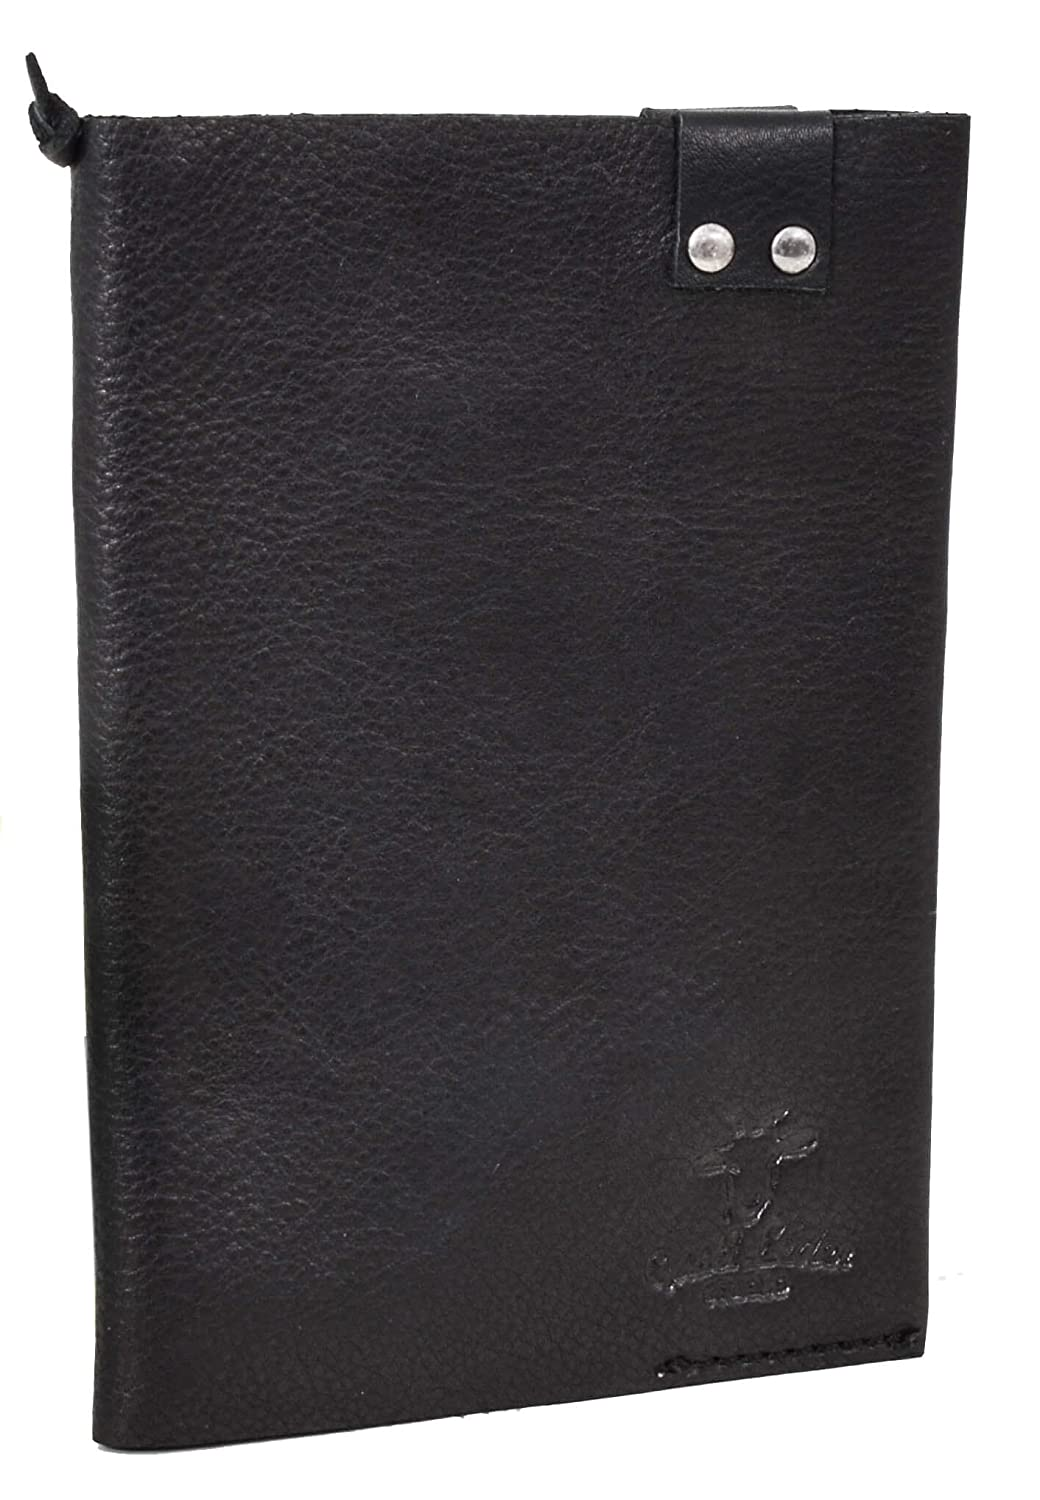 Gusti Leather Studio Gaston Leather A6 envelope Protective Sleeve Leather Card Case Leather Leather Passport Cover 2P43 Black/9 Gusti Leder 2P43-22-9